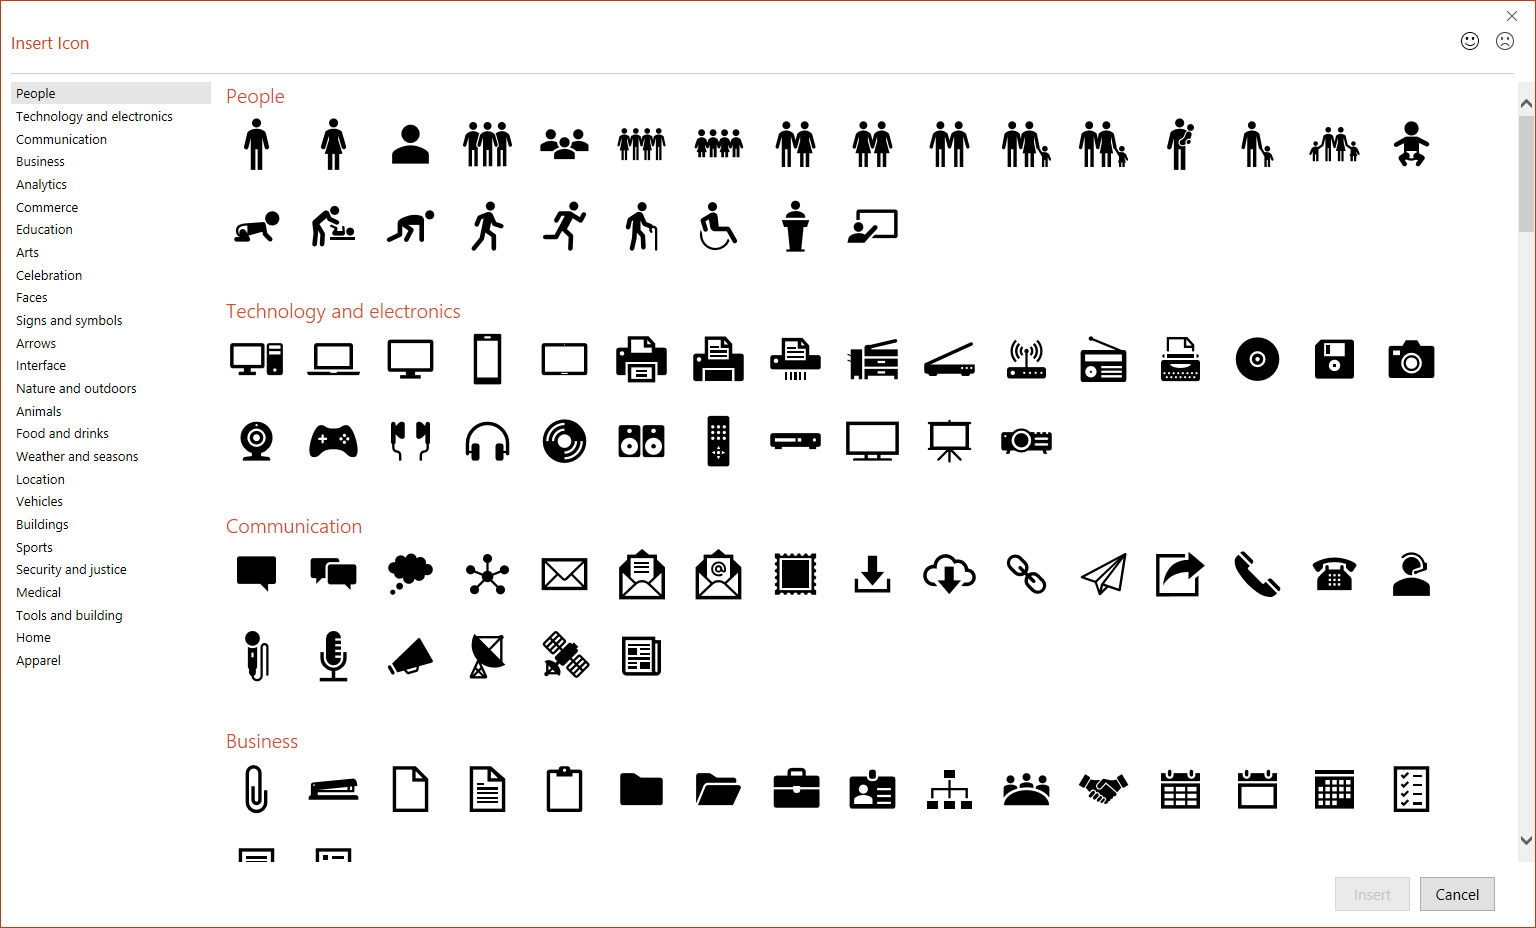 PowerPoint Insert Icons window